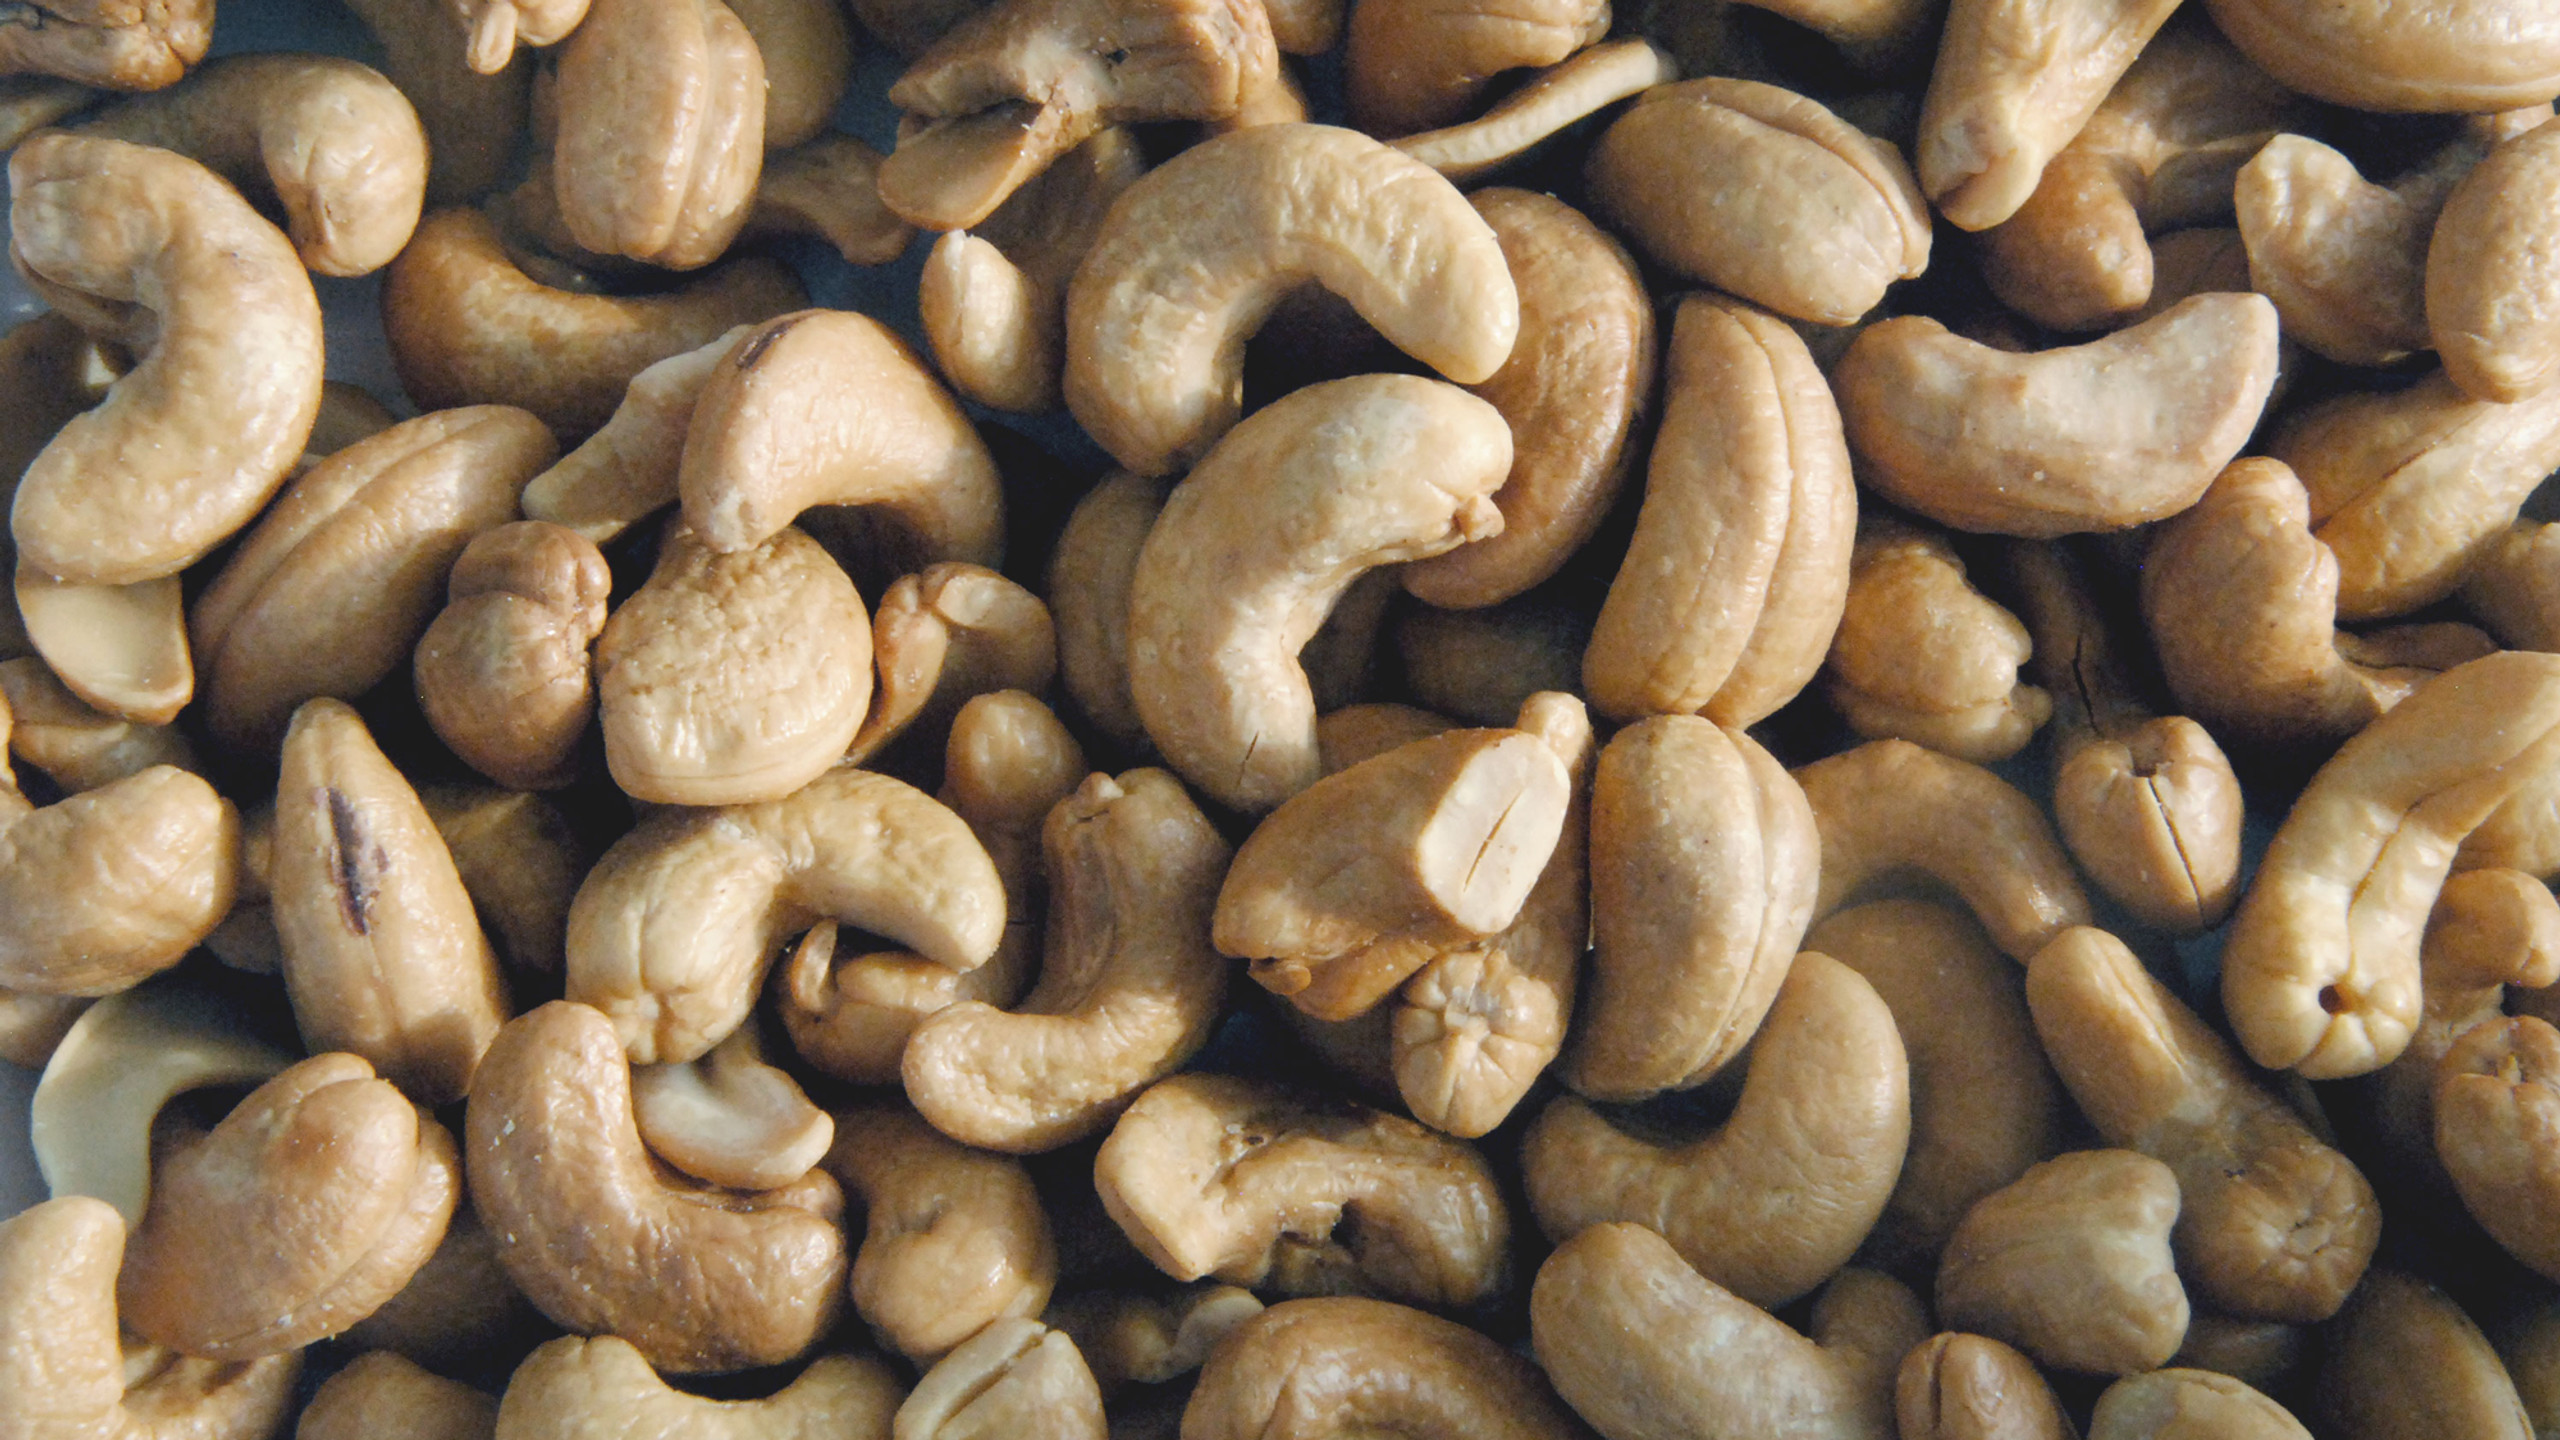 1 serving of raw cashews (about 15-18 nuts) has about 6 grams of protein and lots heart healthy fat. Make your own nut butter, or milk, toss into trail mix or eat plain as a snack.